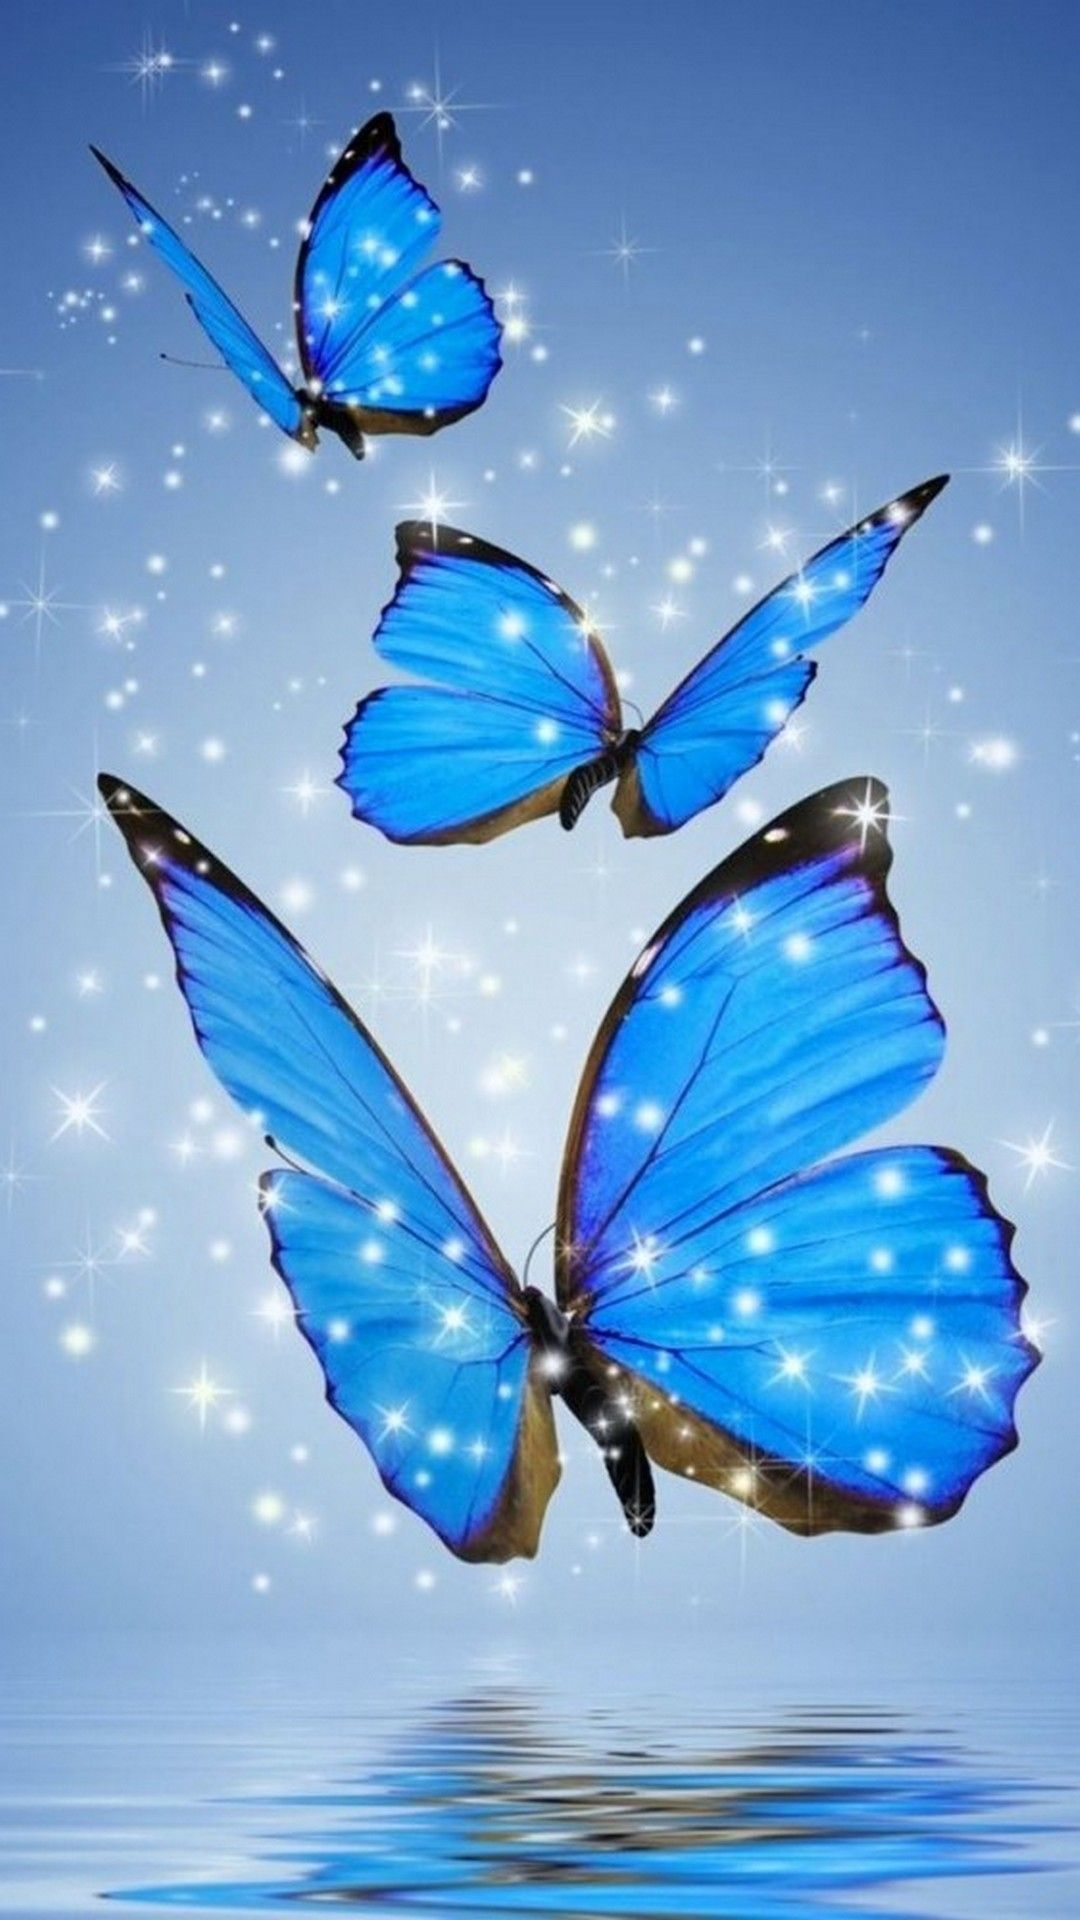 Blue Butterfly Wallpaper For Phone 1080x1920 Blue Butterfly Wallpaper Butterfly Wallpaper Butterfly Wallpaper Iphone